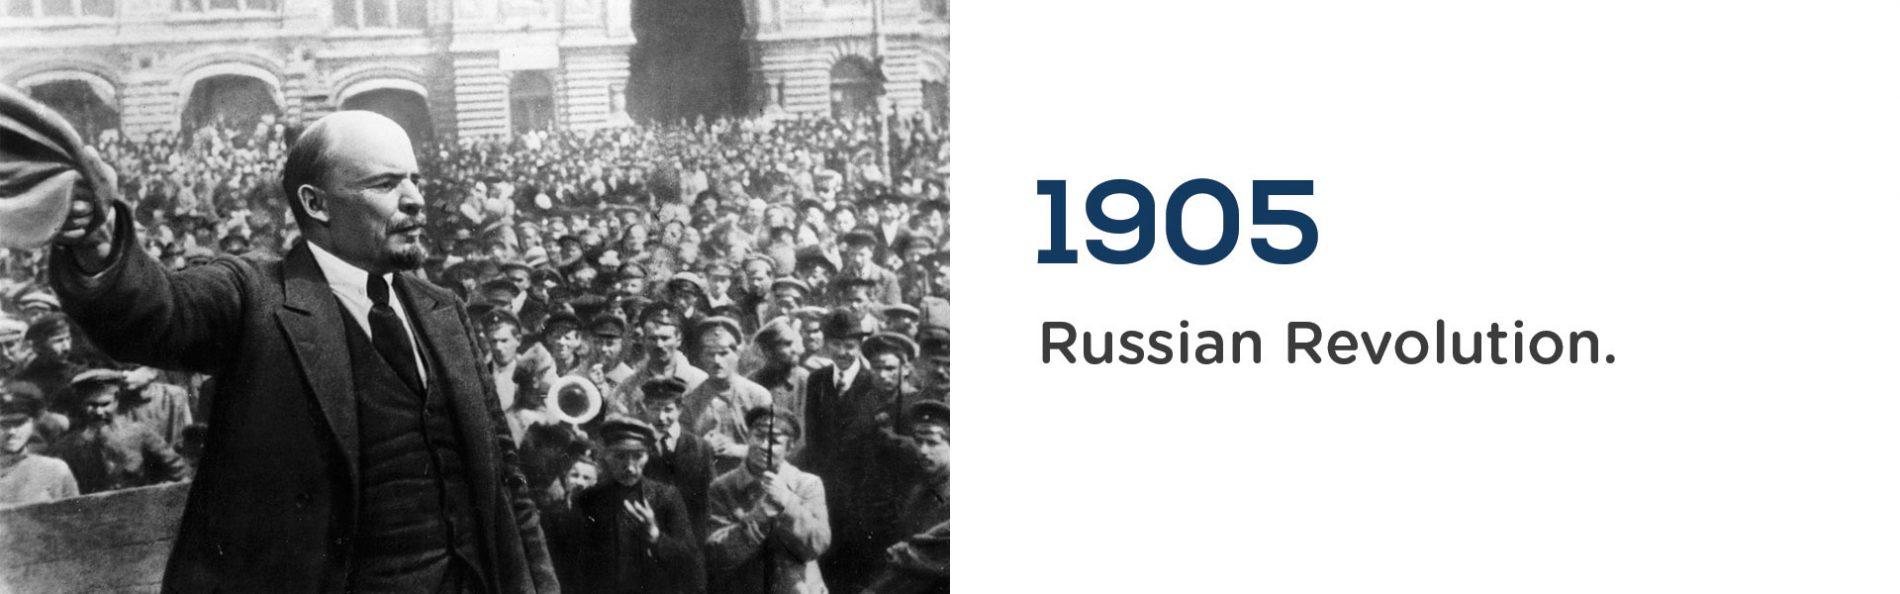 Russian Revolution beings in 1905.Wrigley Claydon Solicitors, Trusted for 200 years